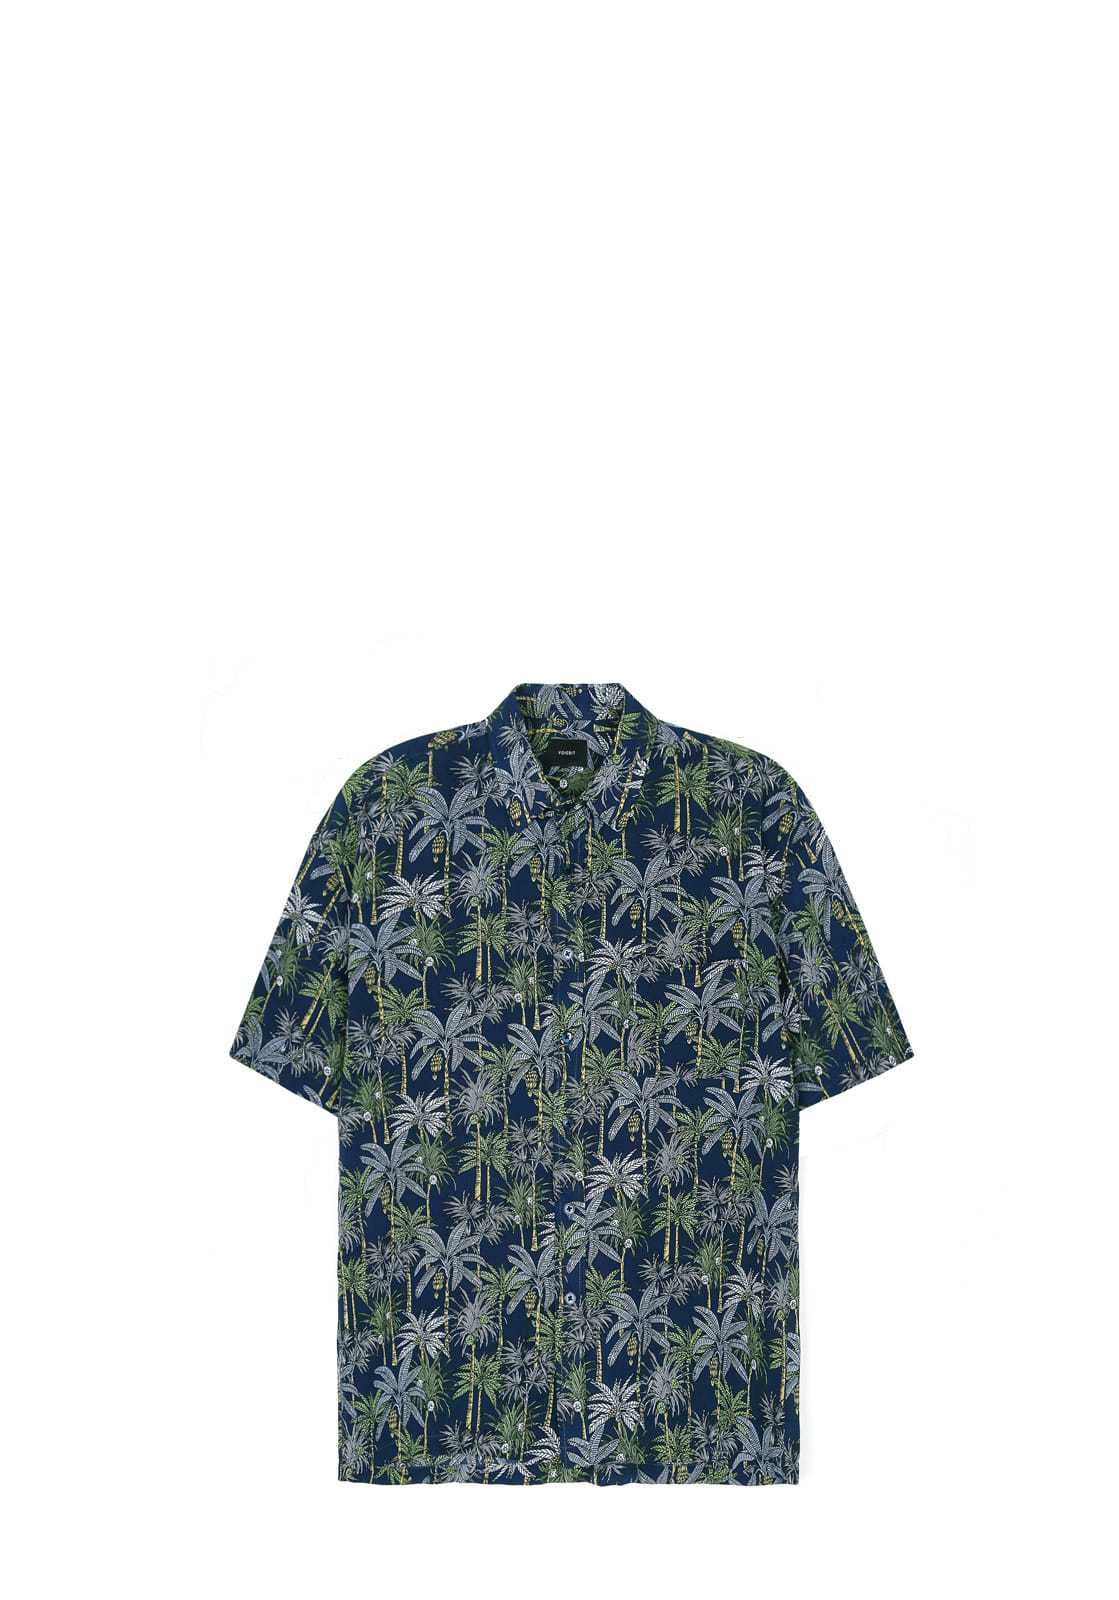 V431 COCONUT TREE HALF-SHIRT  NAVY